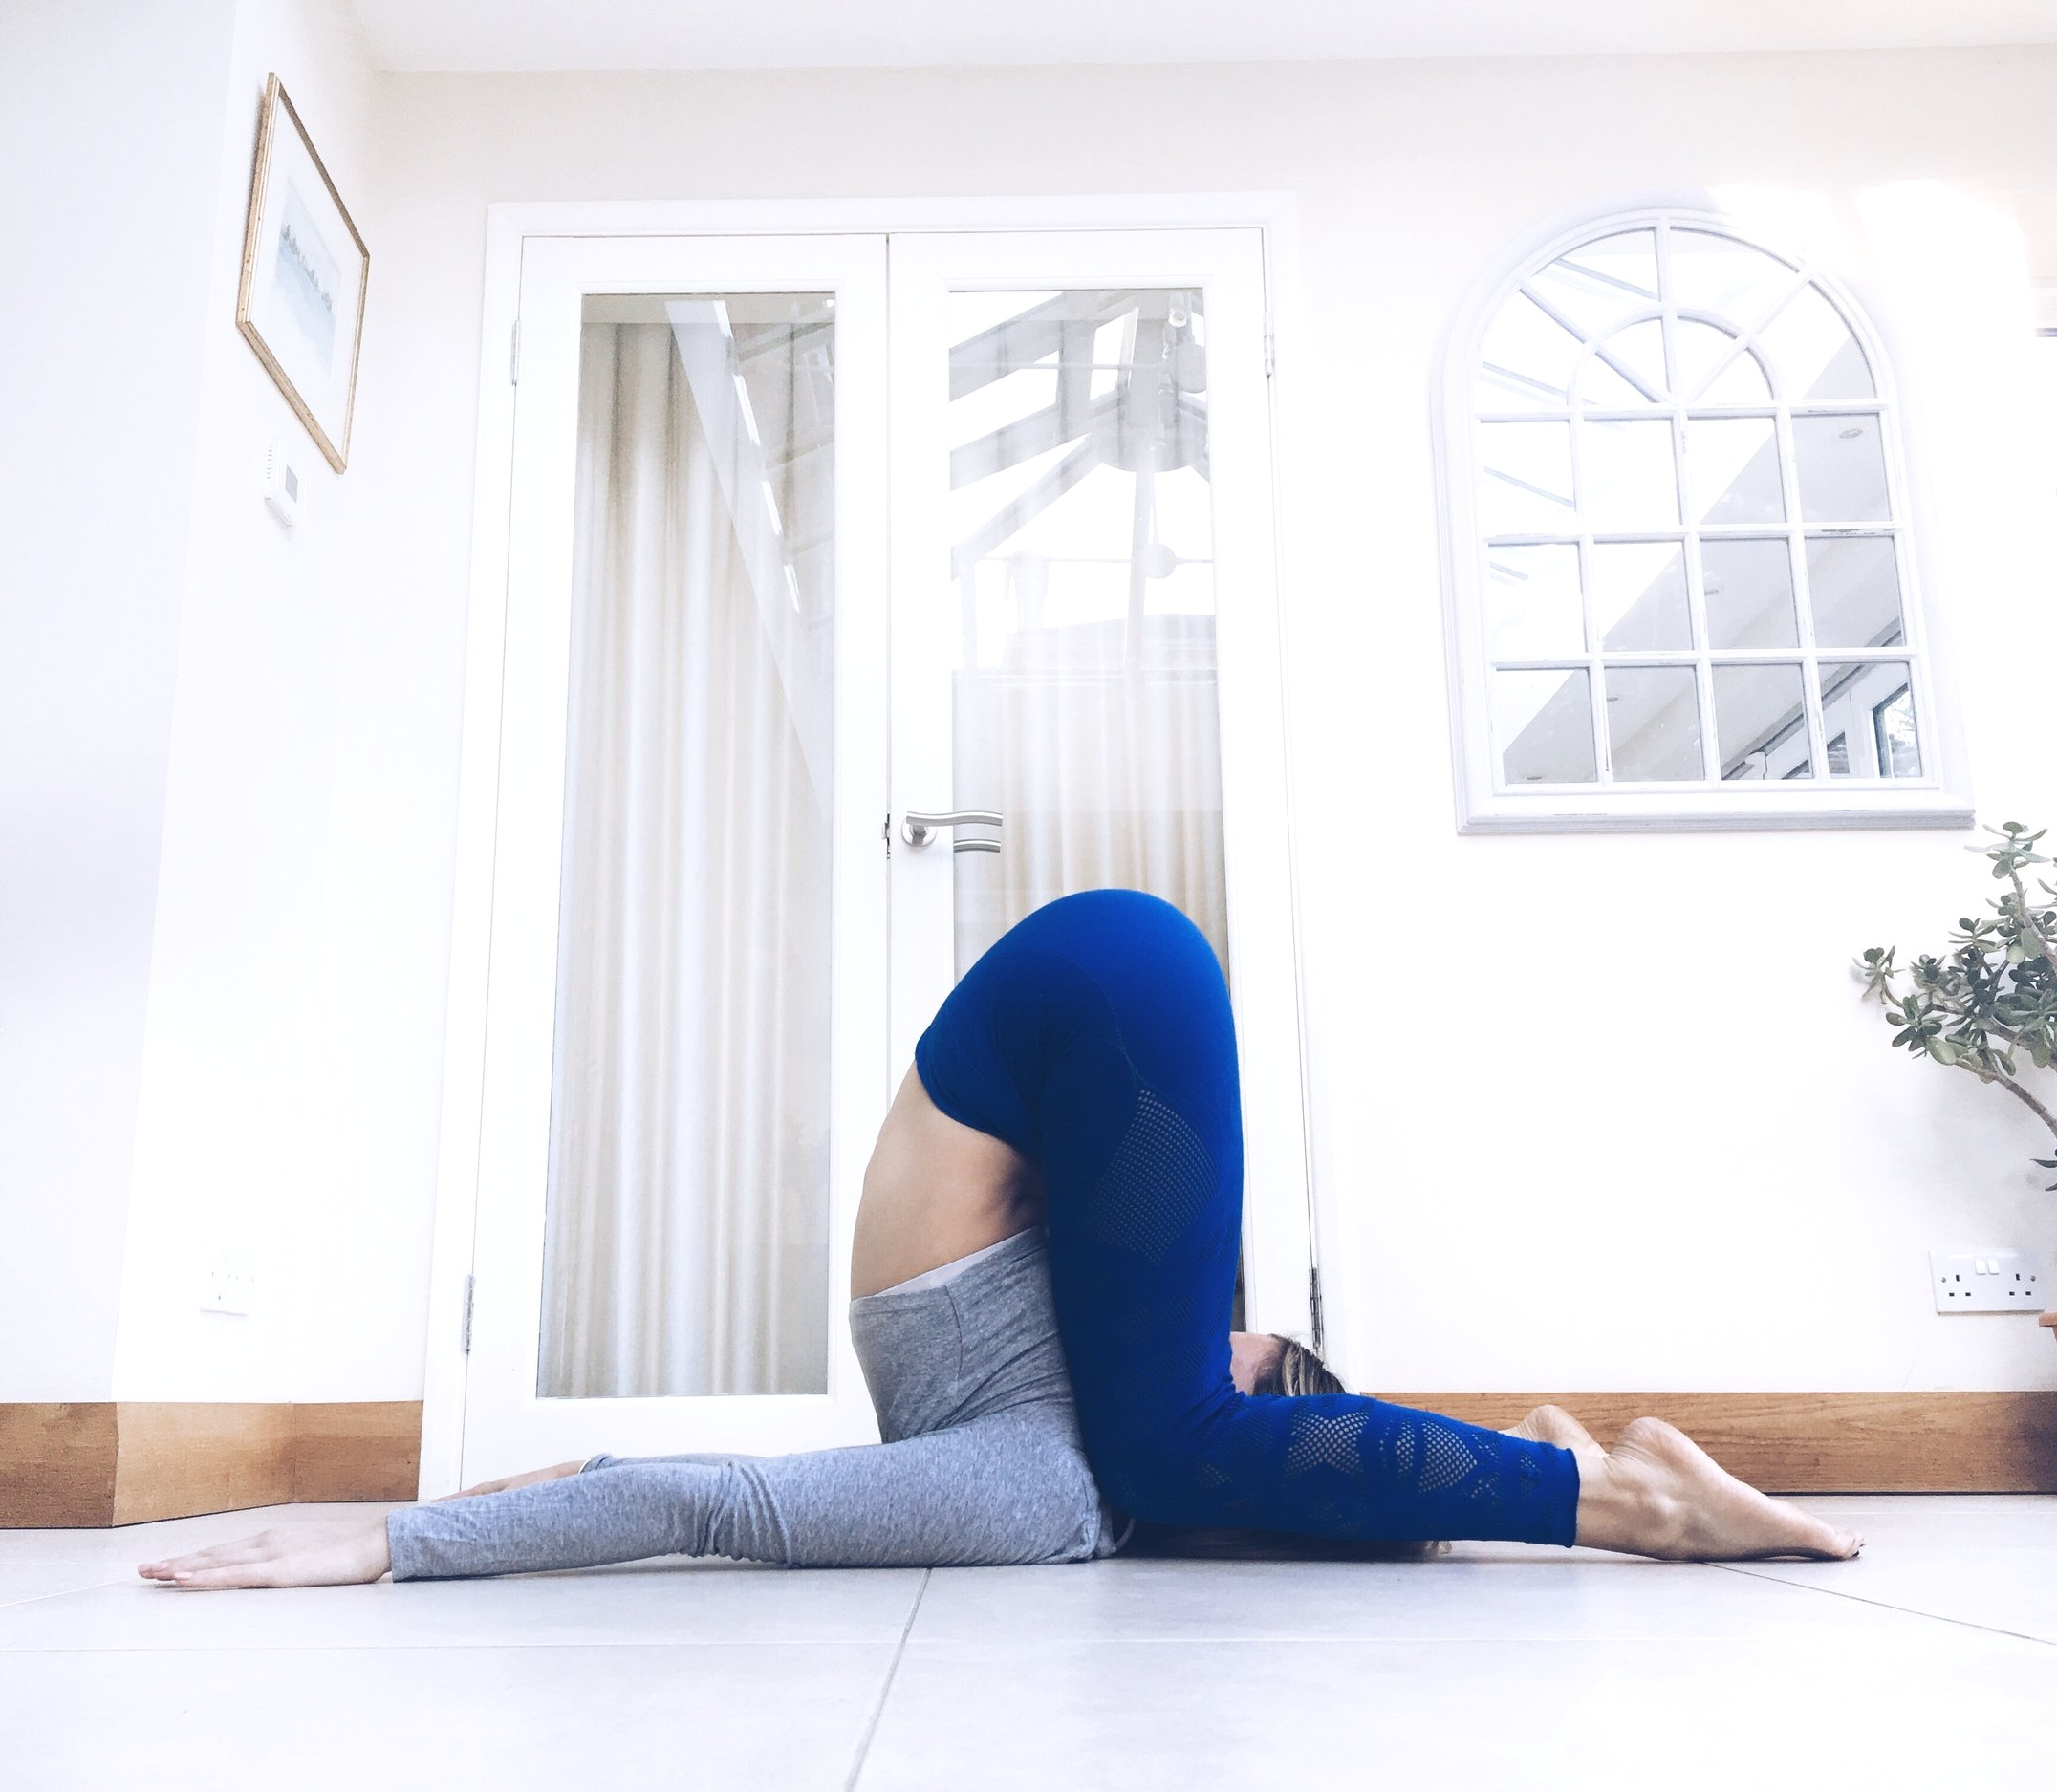 Karnapidasana. Knee to Ear Pose.